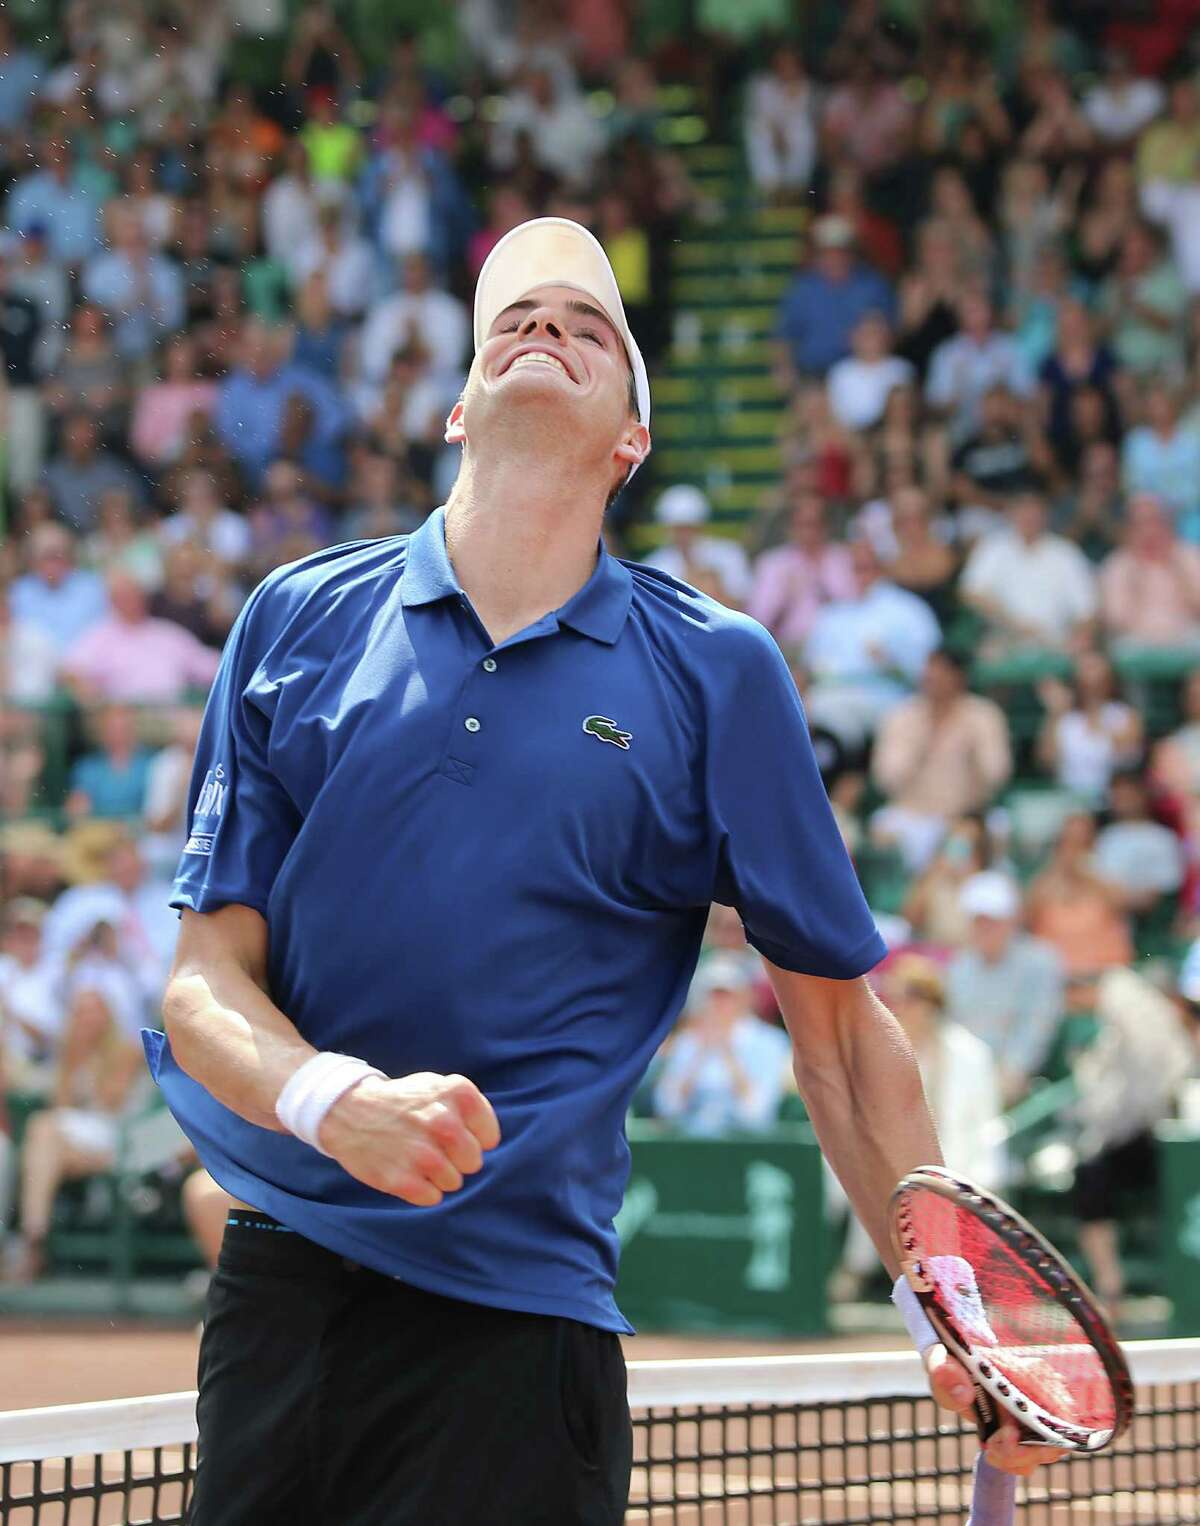 4/14/13: John Isner (USA) pumps his fist and smiles as he defeats Nicolas Almagro (ESP) in the finals of the River Oaks US Men's Clay Court Championship at River Oaks Country Club in Houston, Texas. Isner won 6-3, 7-5.